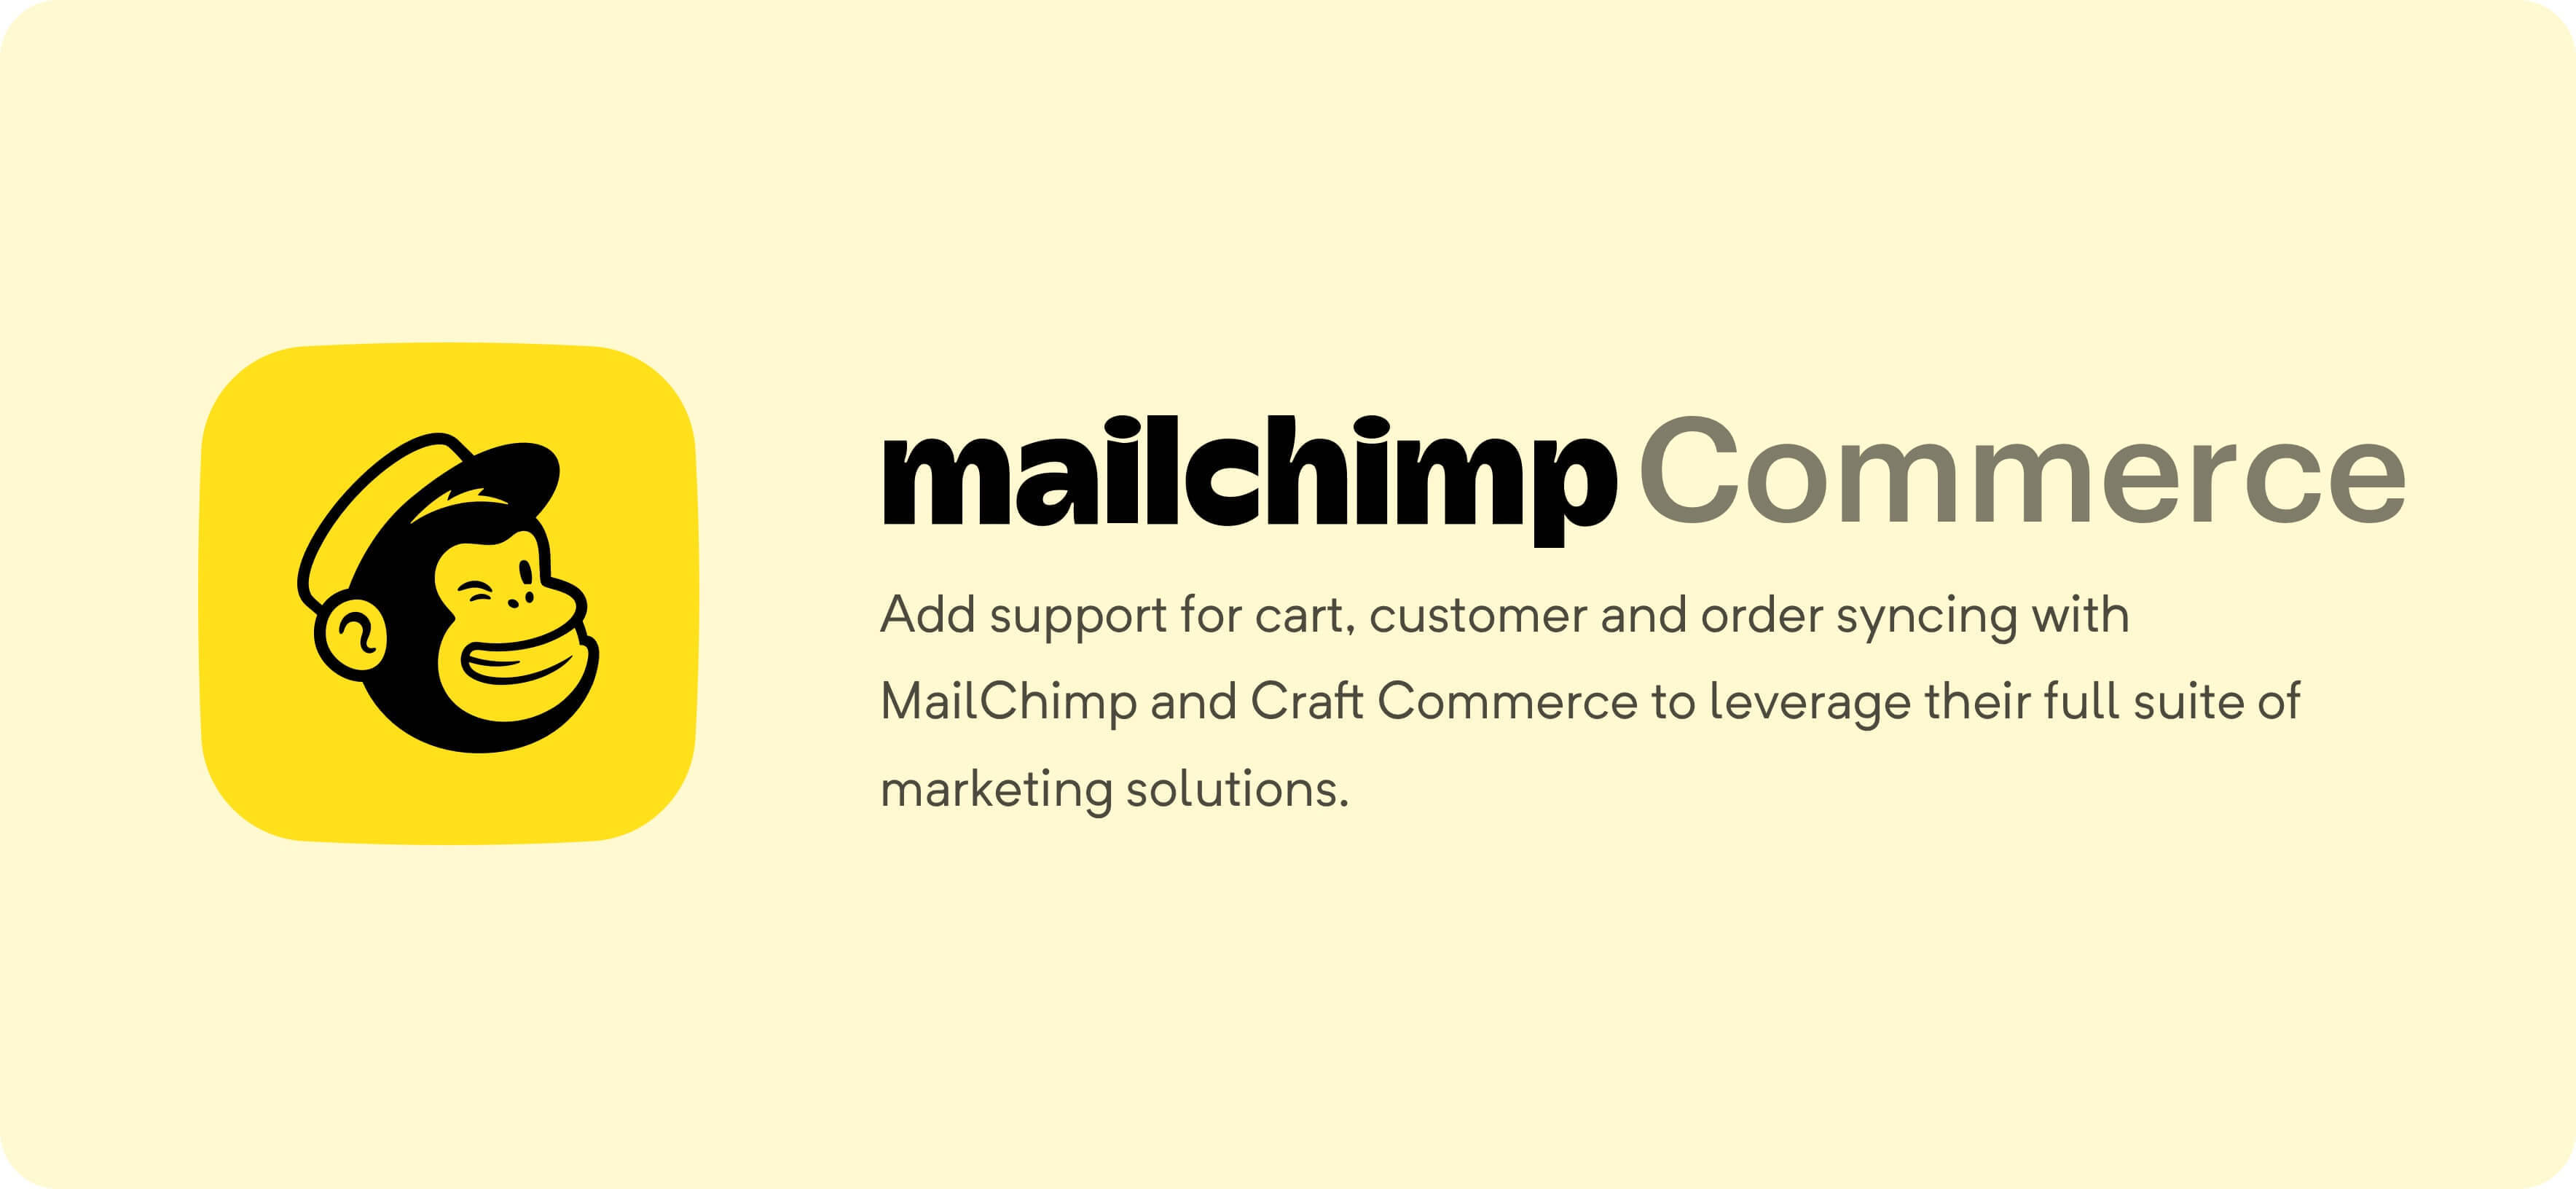 Mailchimp Commerce